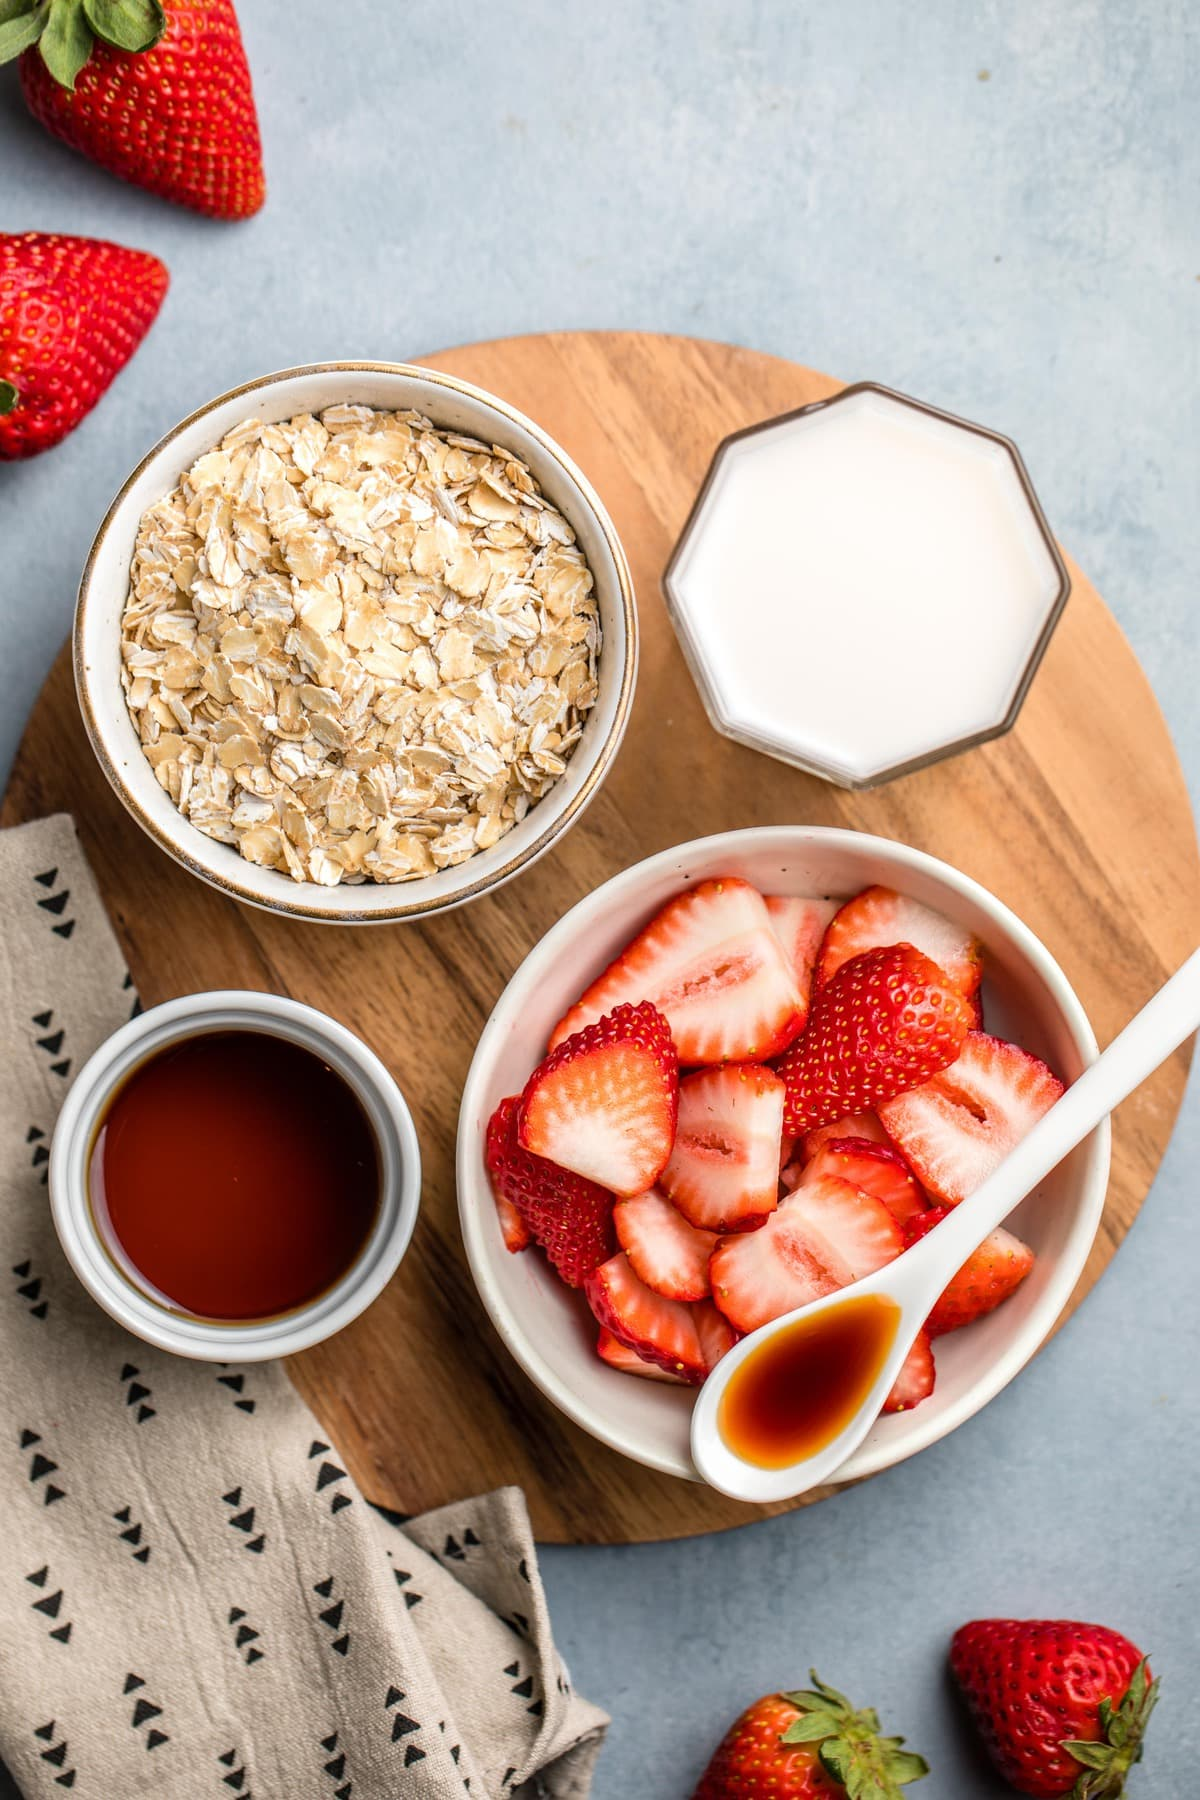 ingredients for strawberries and cream oatmeal arranged on round wood cutting board